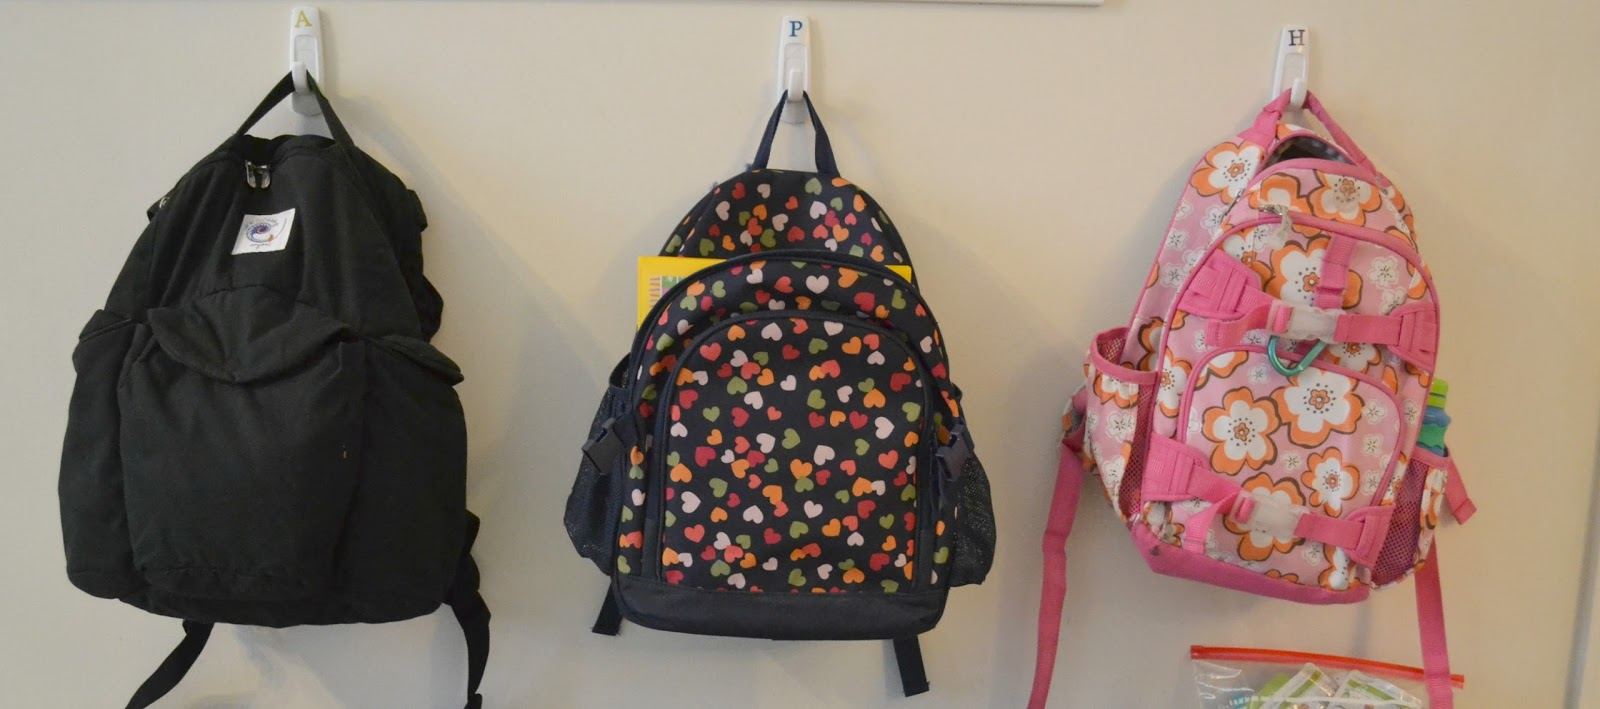 Ideas for hanging backpacks ideas for hanging backpacks my Ideas for hanging backpacks